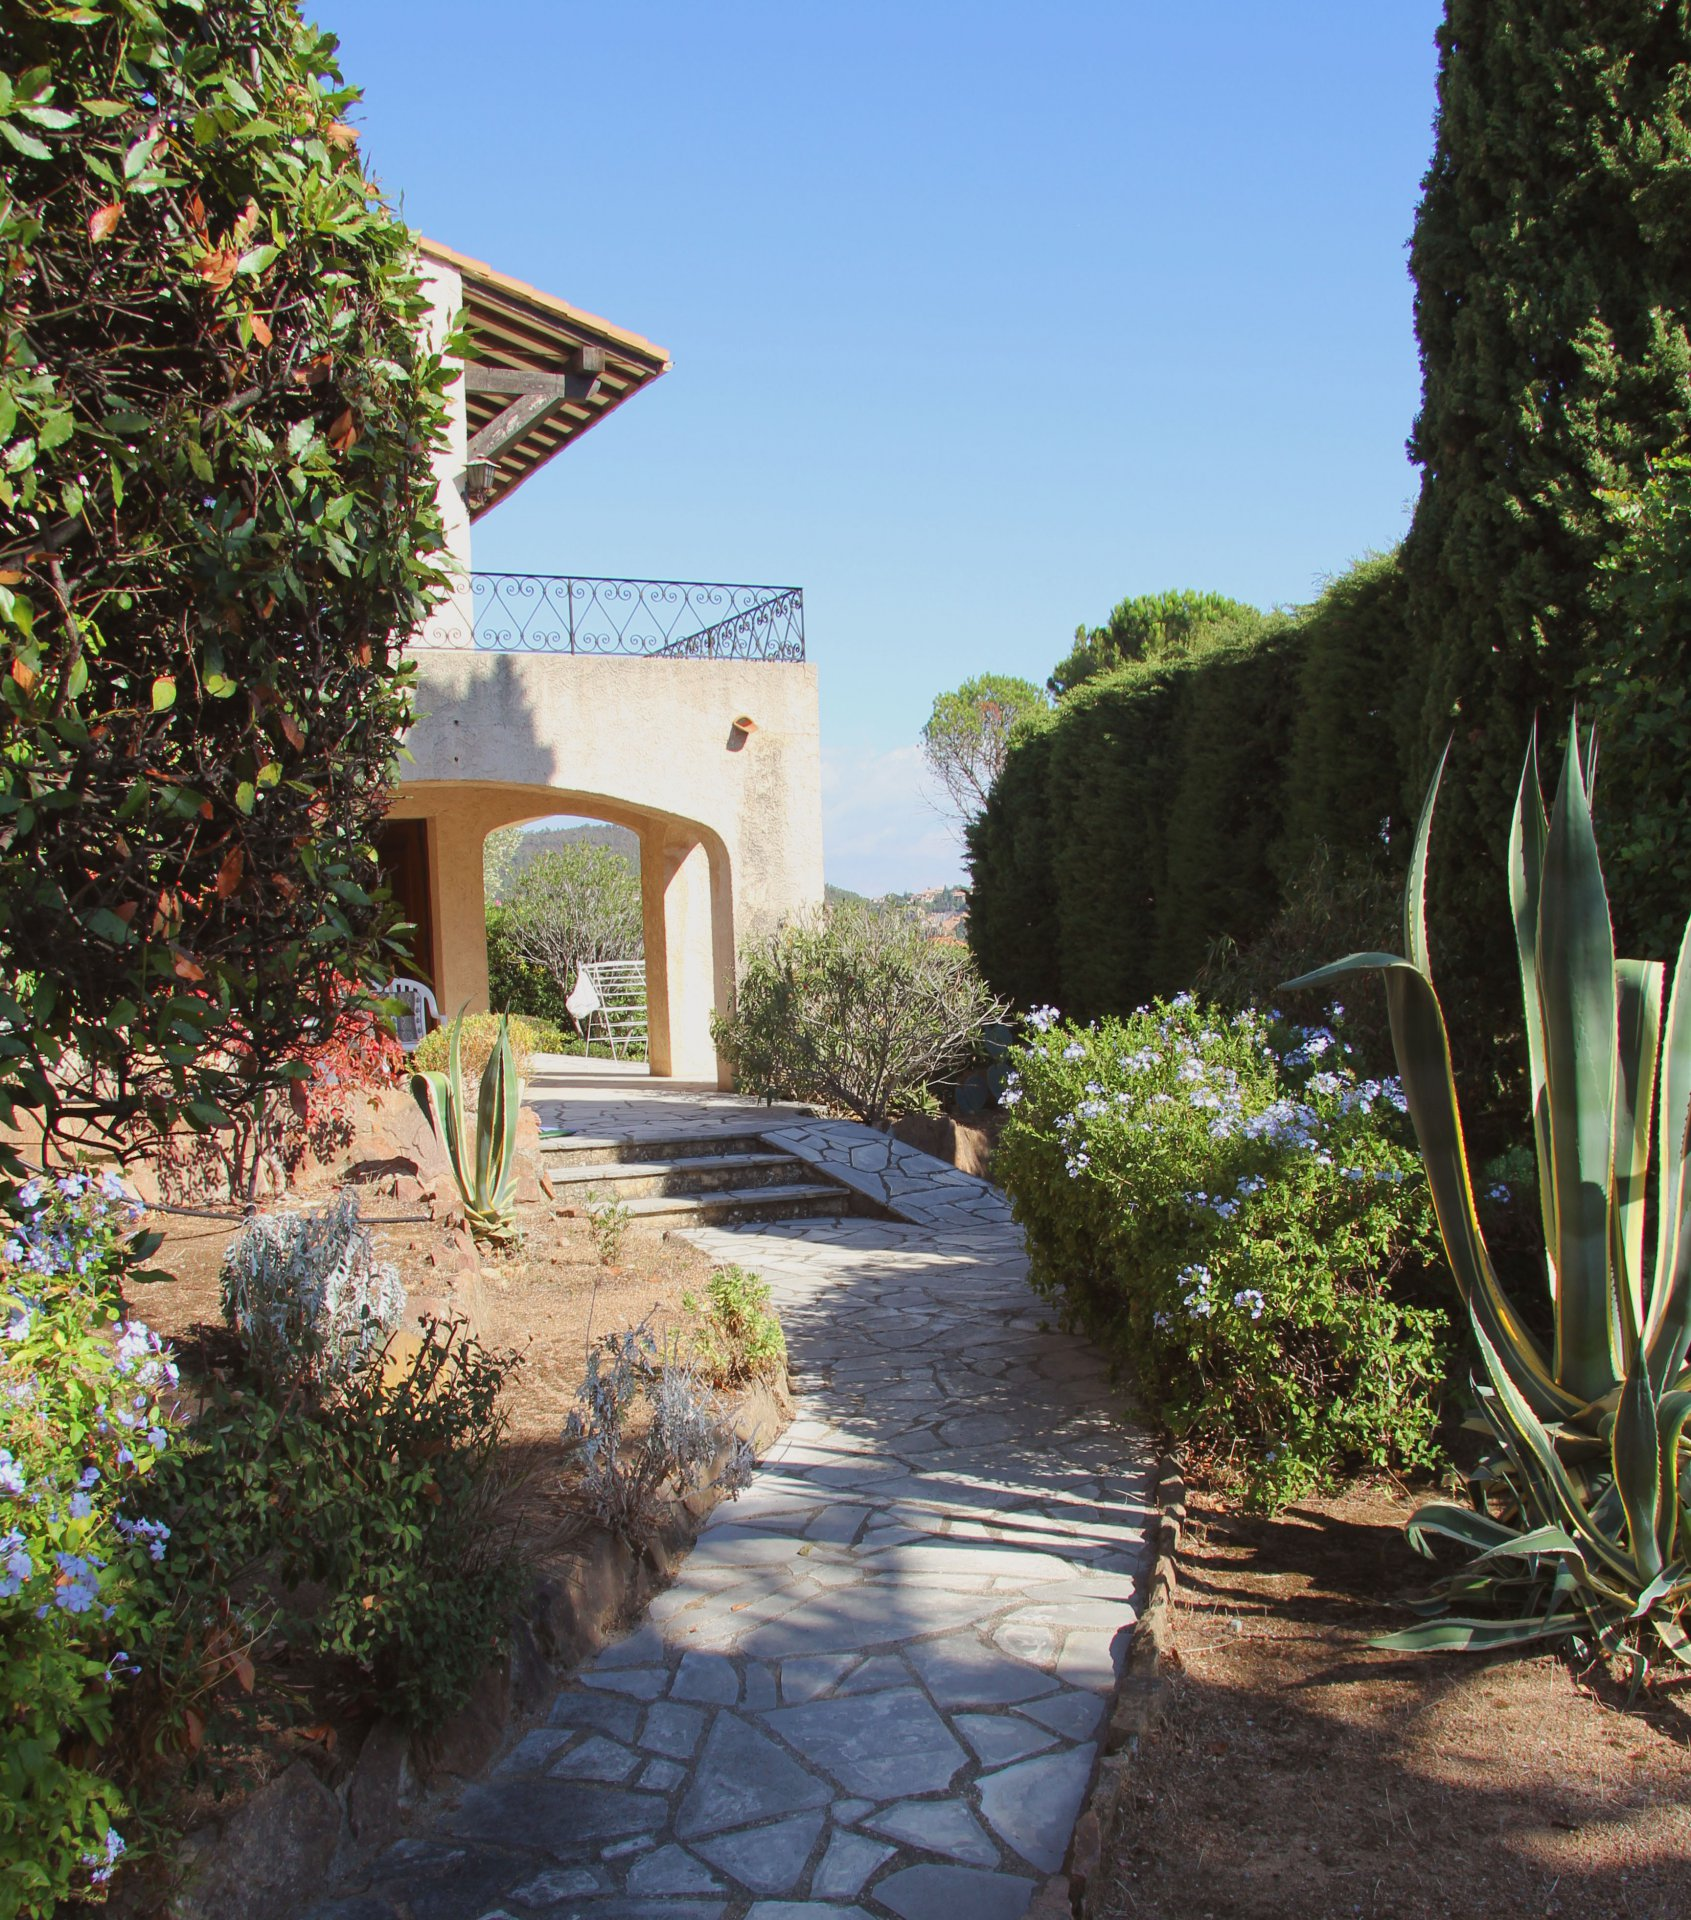 Théoule / Le Trayas:  Provencial country house, 2 living rooms,  4 bedrooms